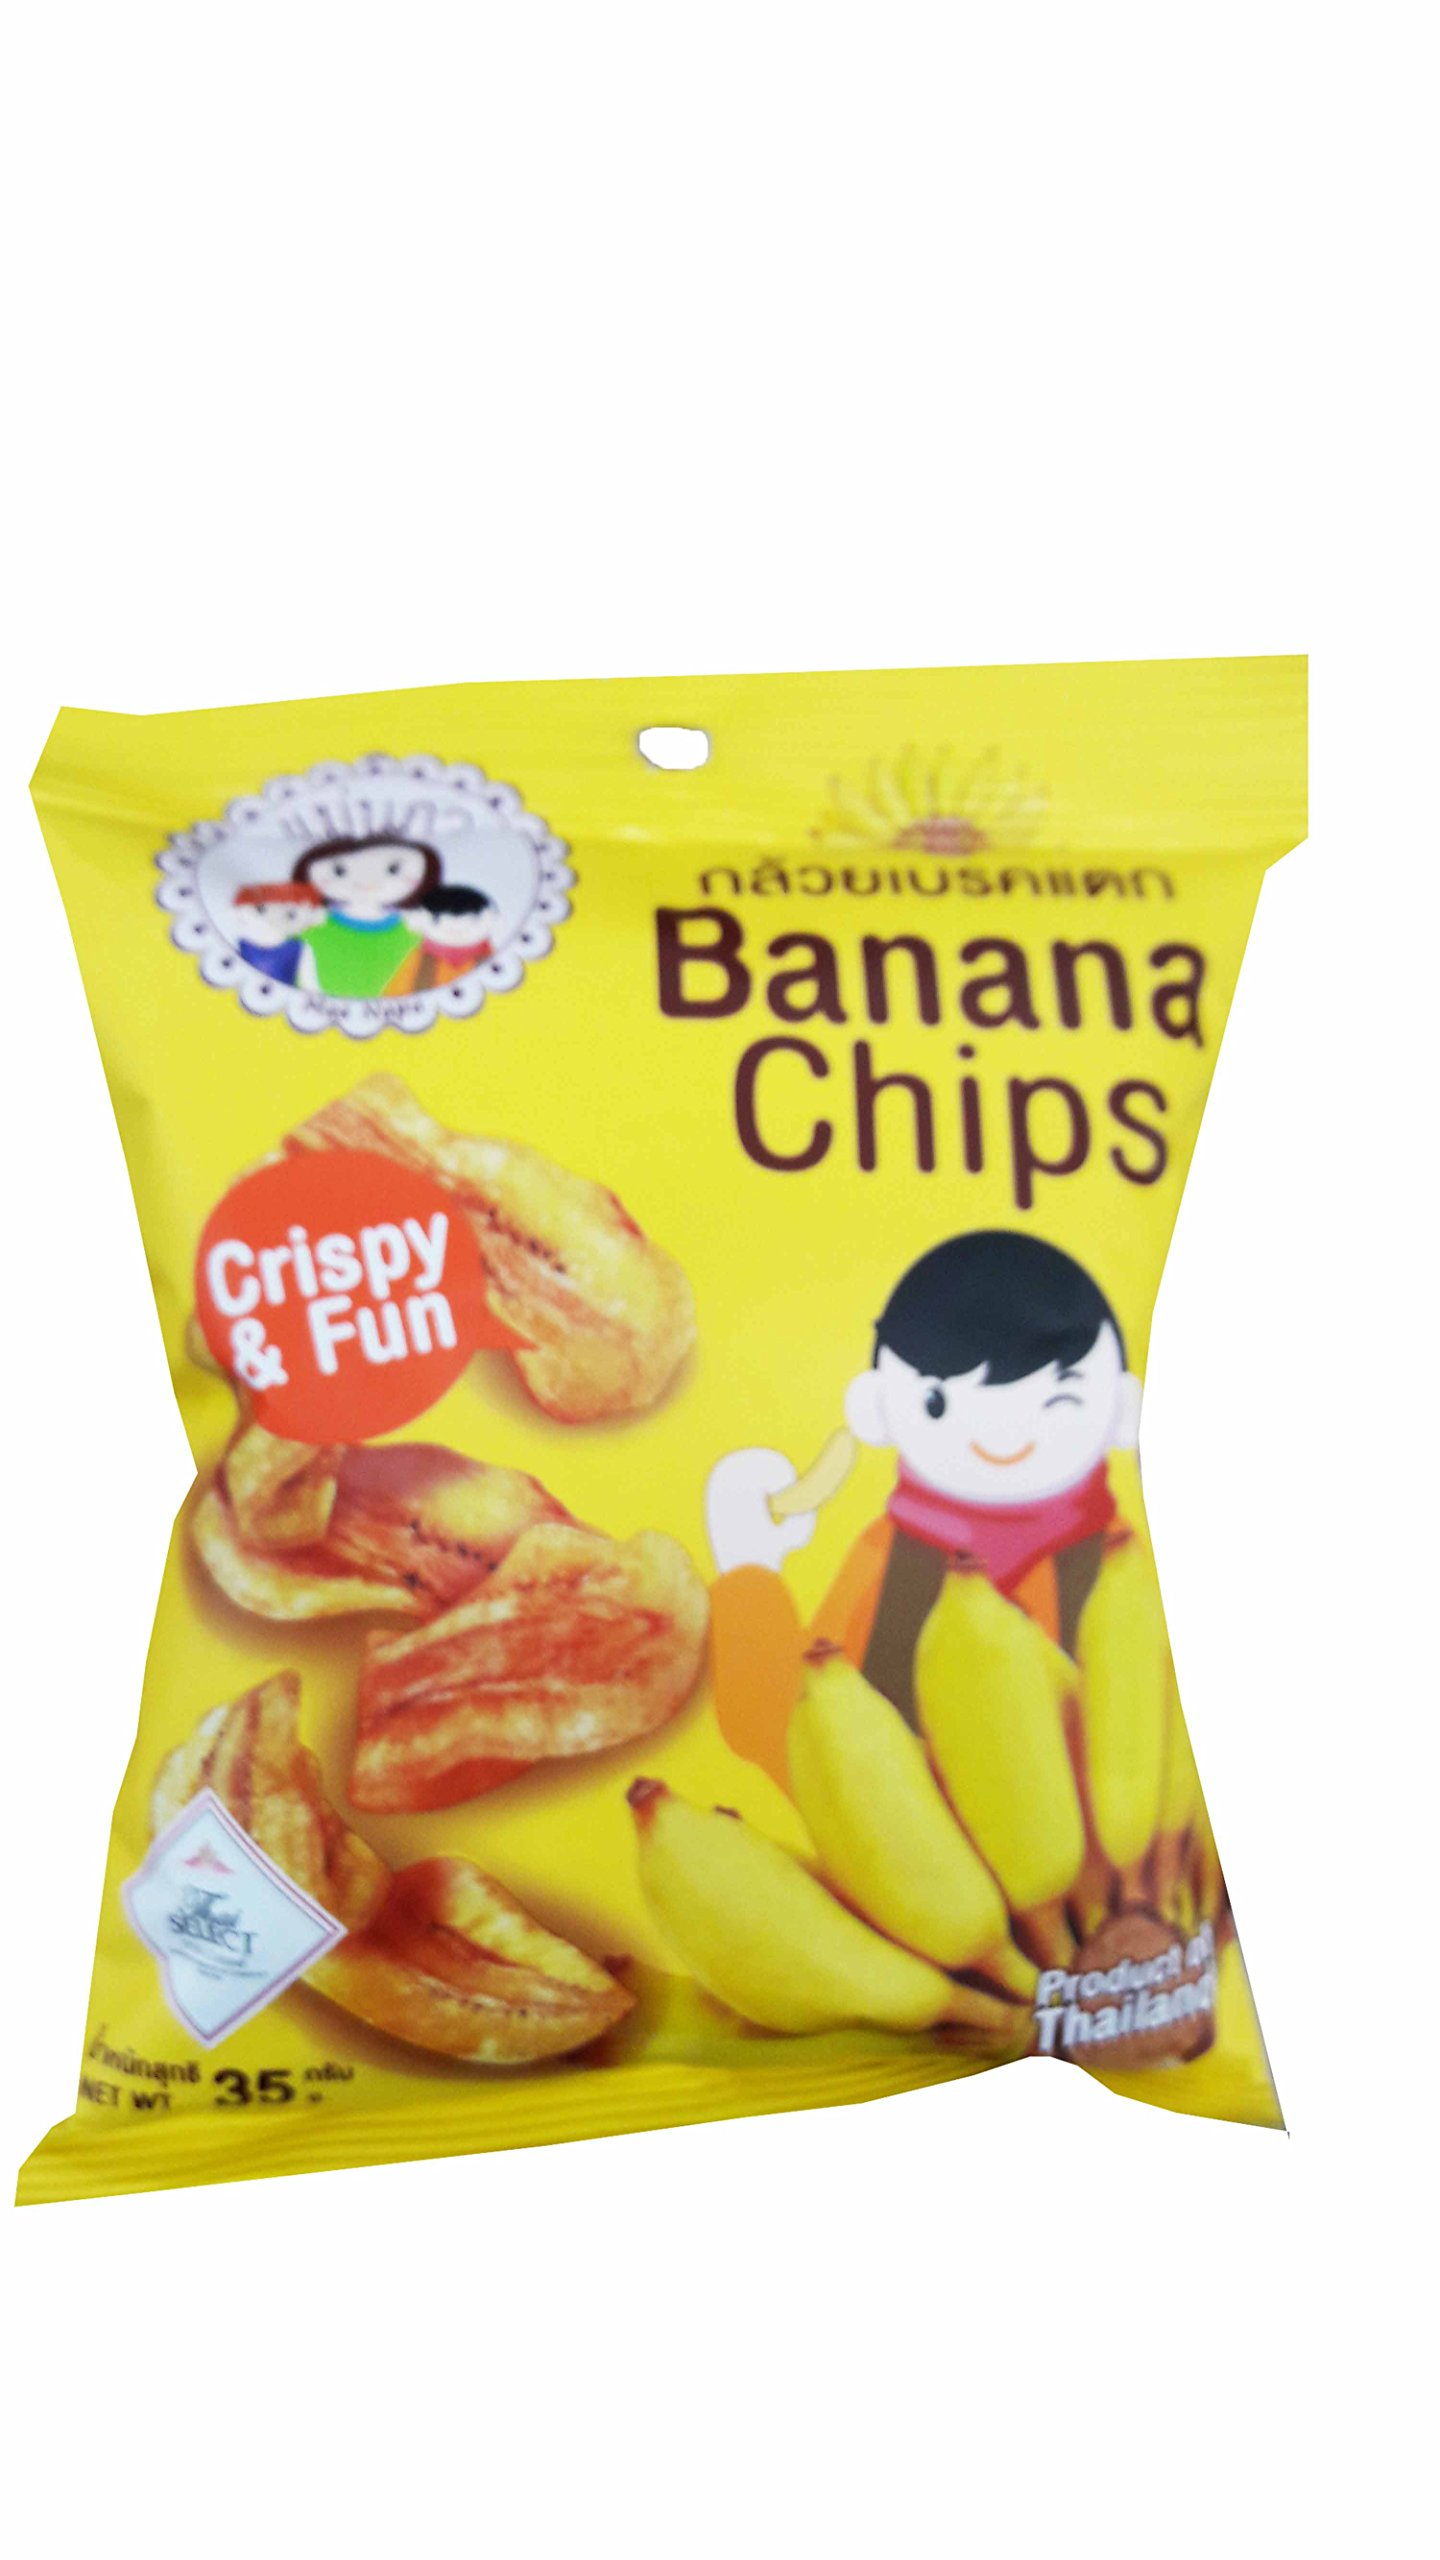 5 packs of Banana Chips, Crispy Banana by Mae Napa, Healthy and Delicious Snack. Premium quality snack from Thailand.(35 g/pack) by Mae Napa